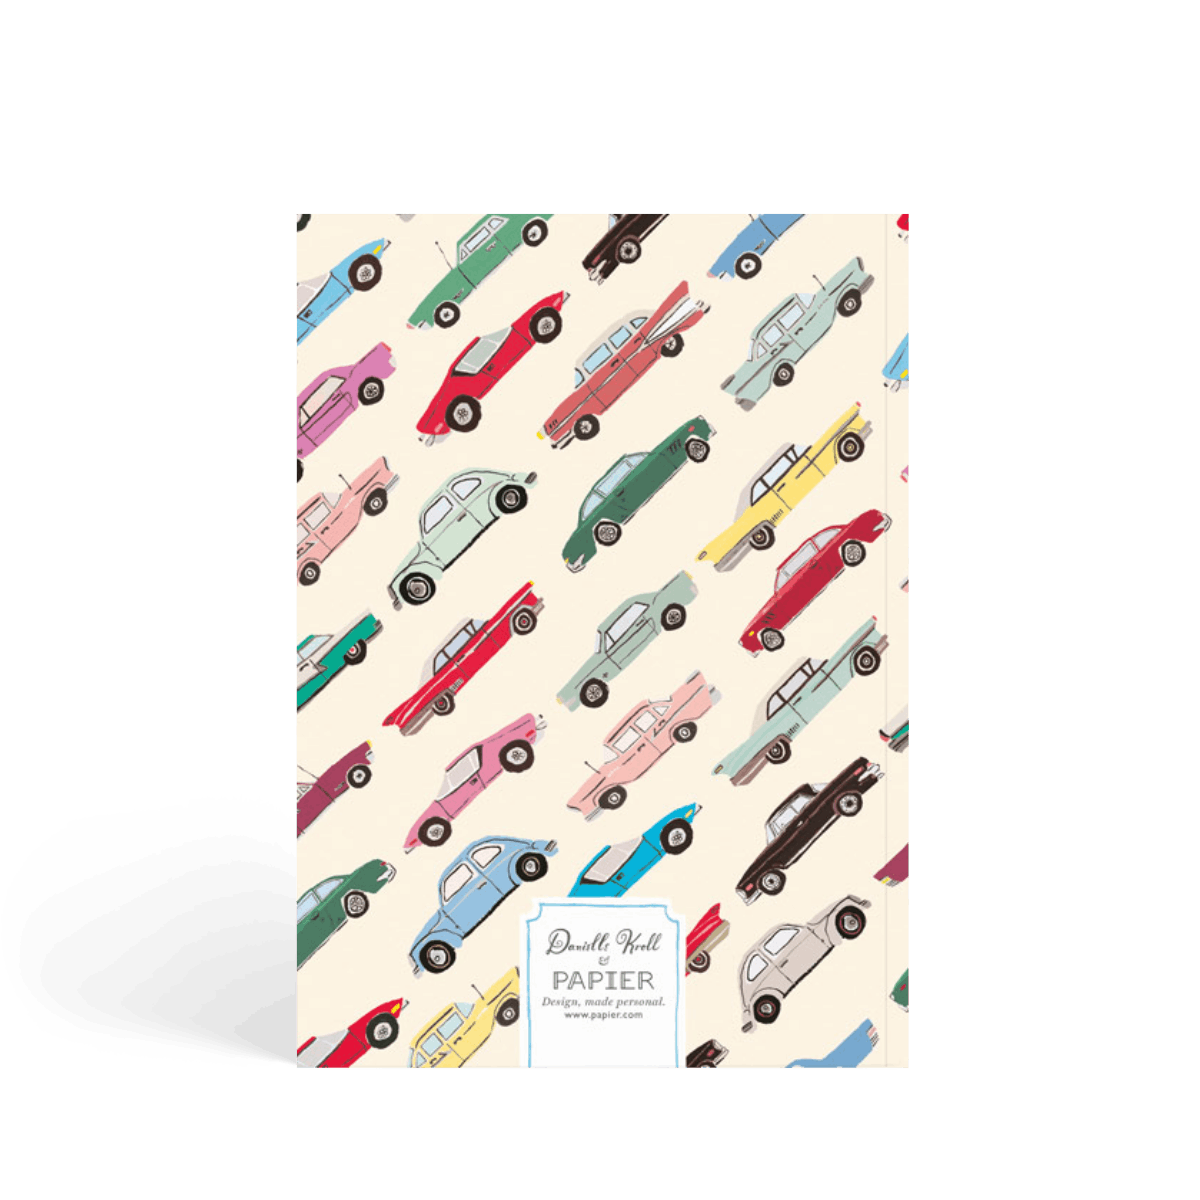 Https%3a%2f%2fwww.papier.com%2fproduct image%2f55830%2f5%2fvintage cars 13408 back 1542299849.png?ixlib=rb 1.1